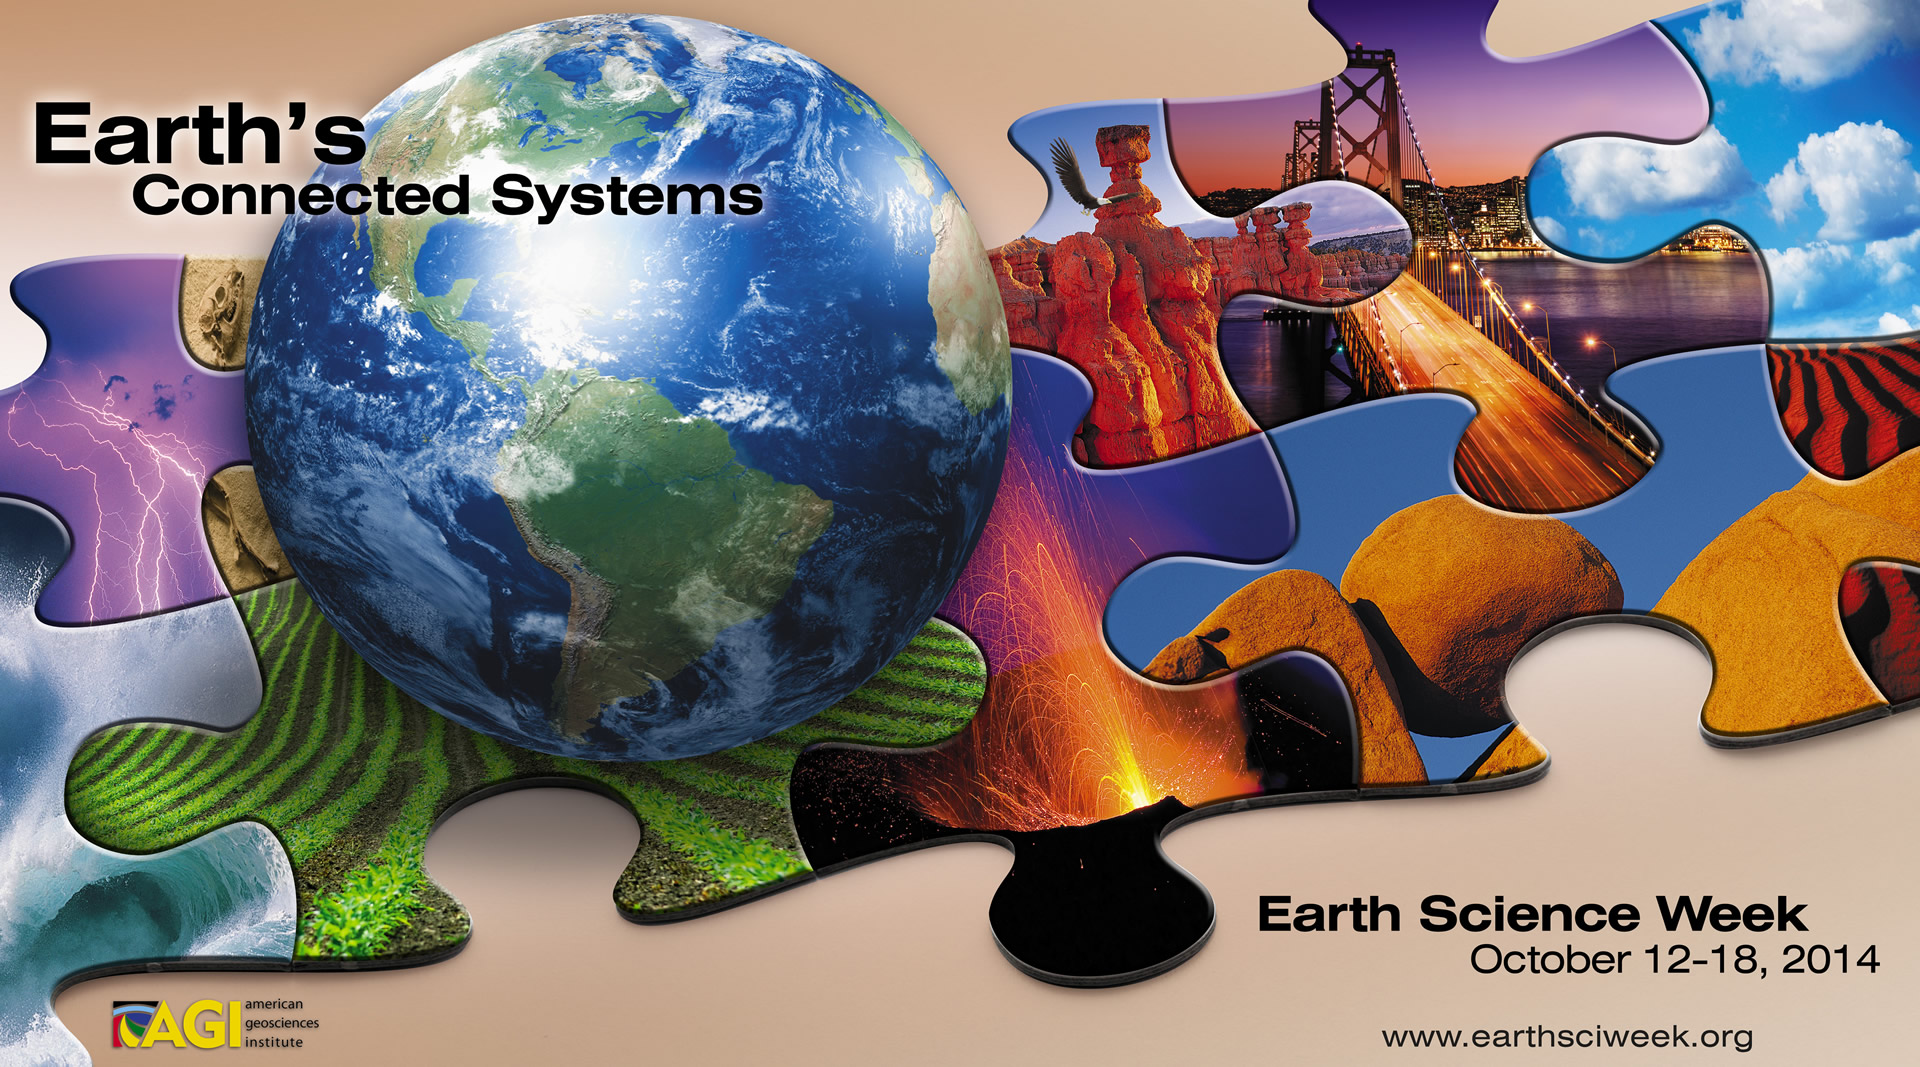 Earth Science Week 2014 Poster